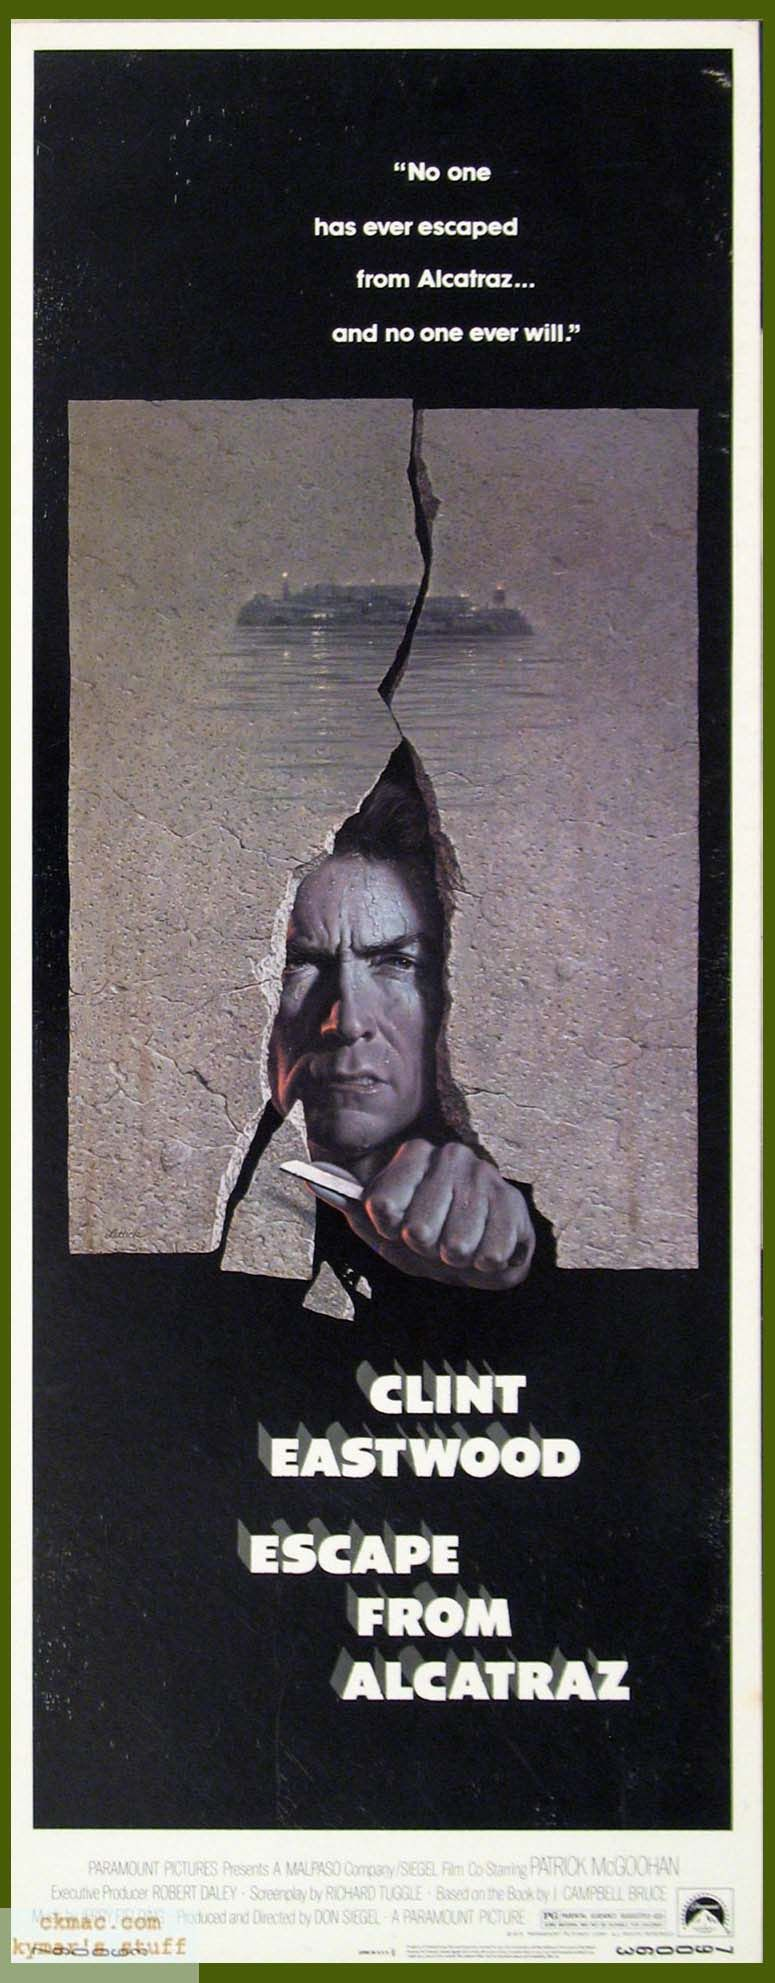 Escape From Alcatraz 1979 Dir Don Siegel Clint Eastwood